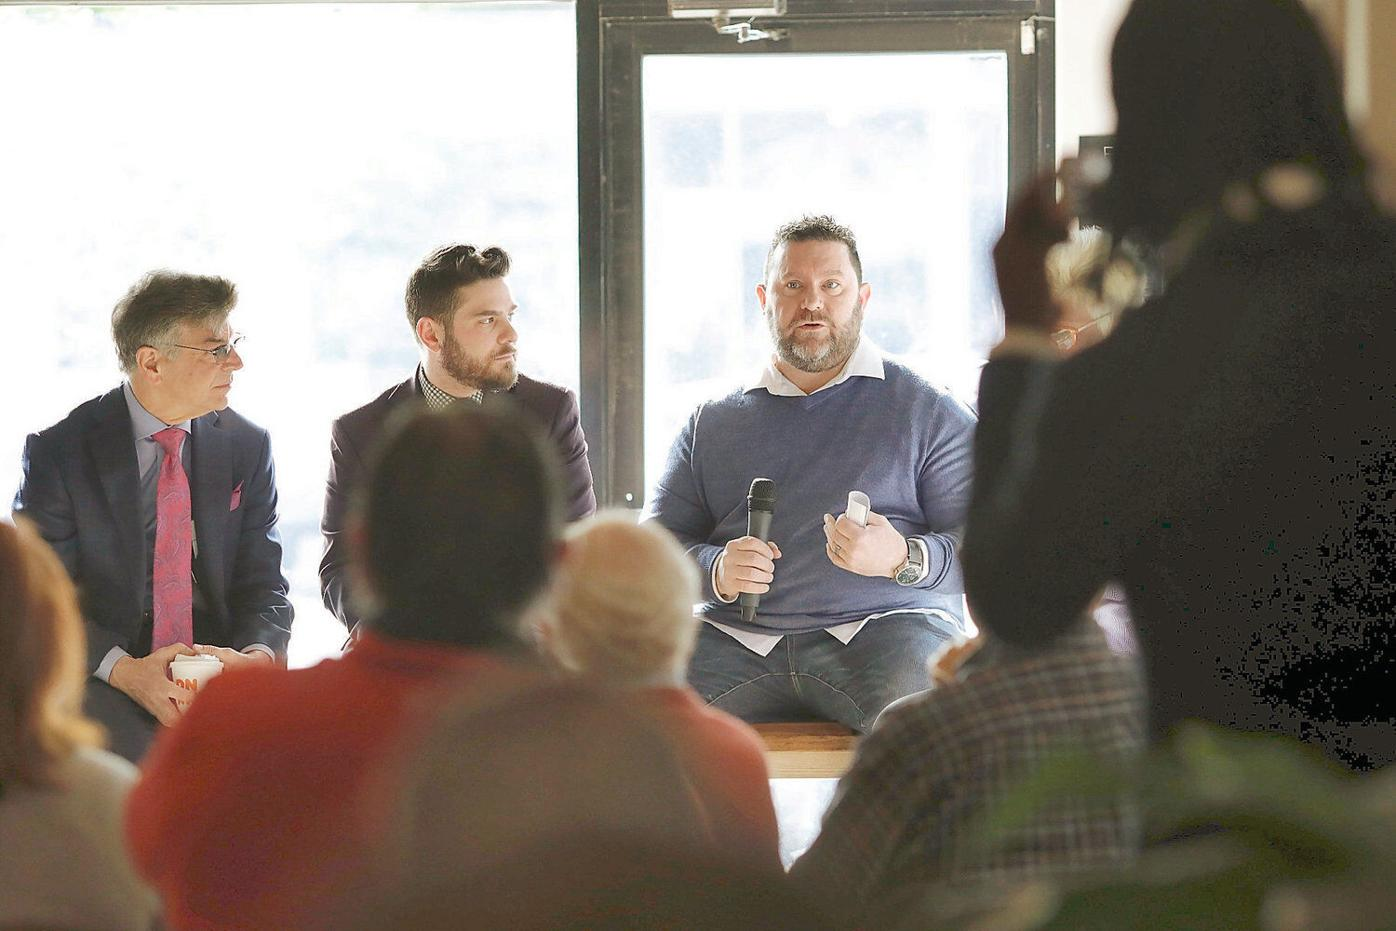 Small-business workshop offers 'sage advice' from Pittsfield entrepreneurs